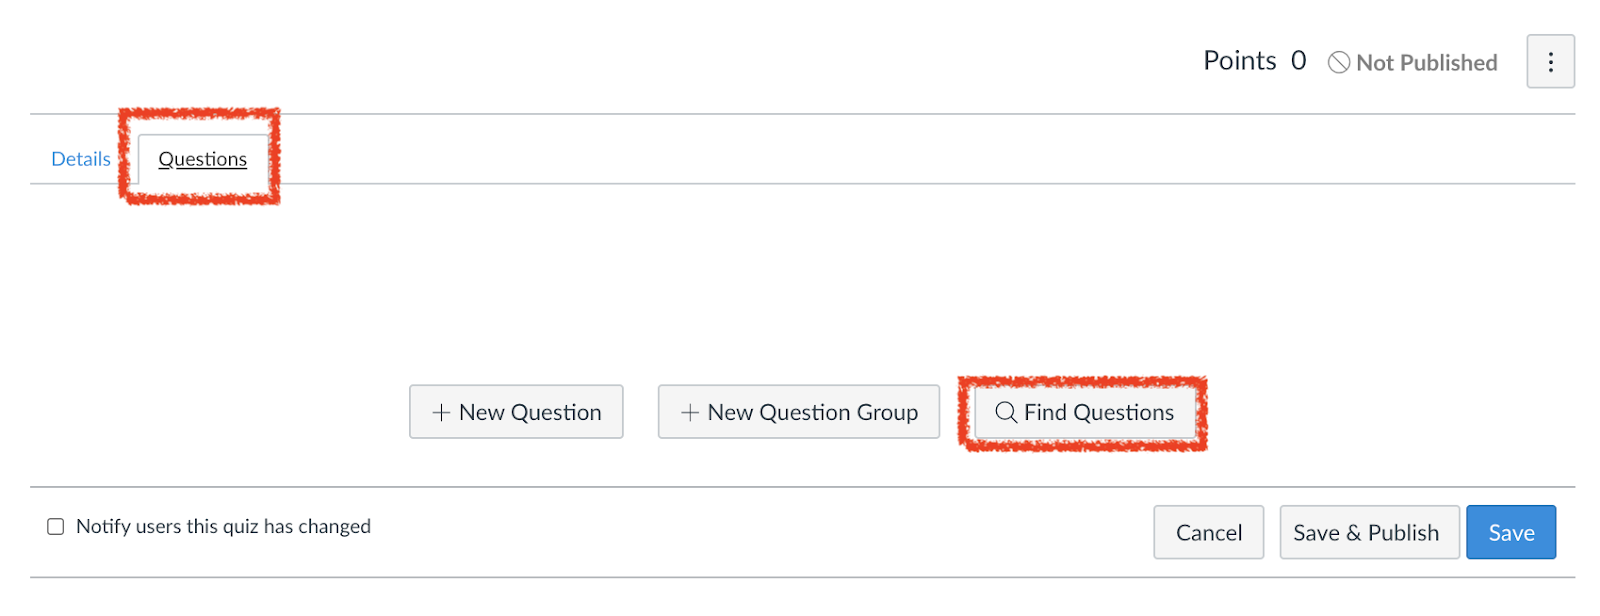 Select Find Questions